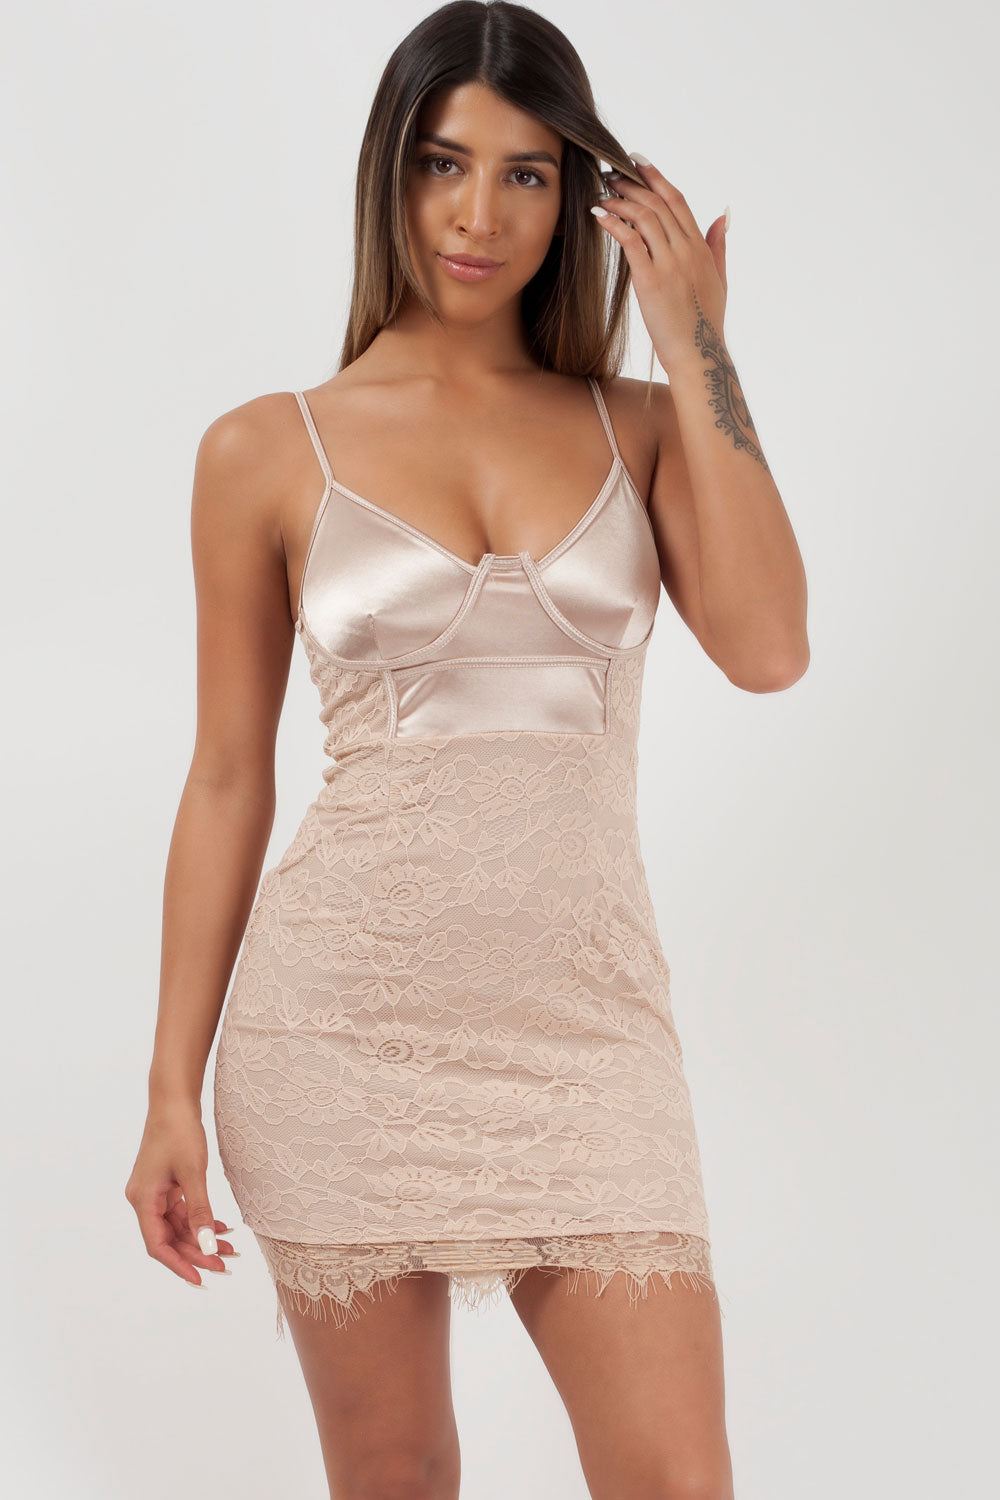 nude bustier dress styledup fashion